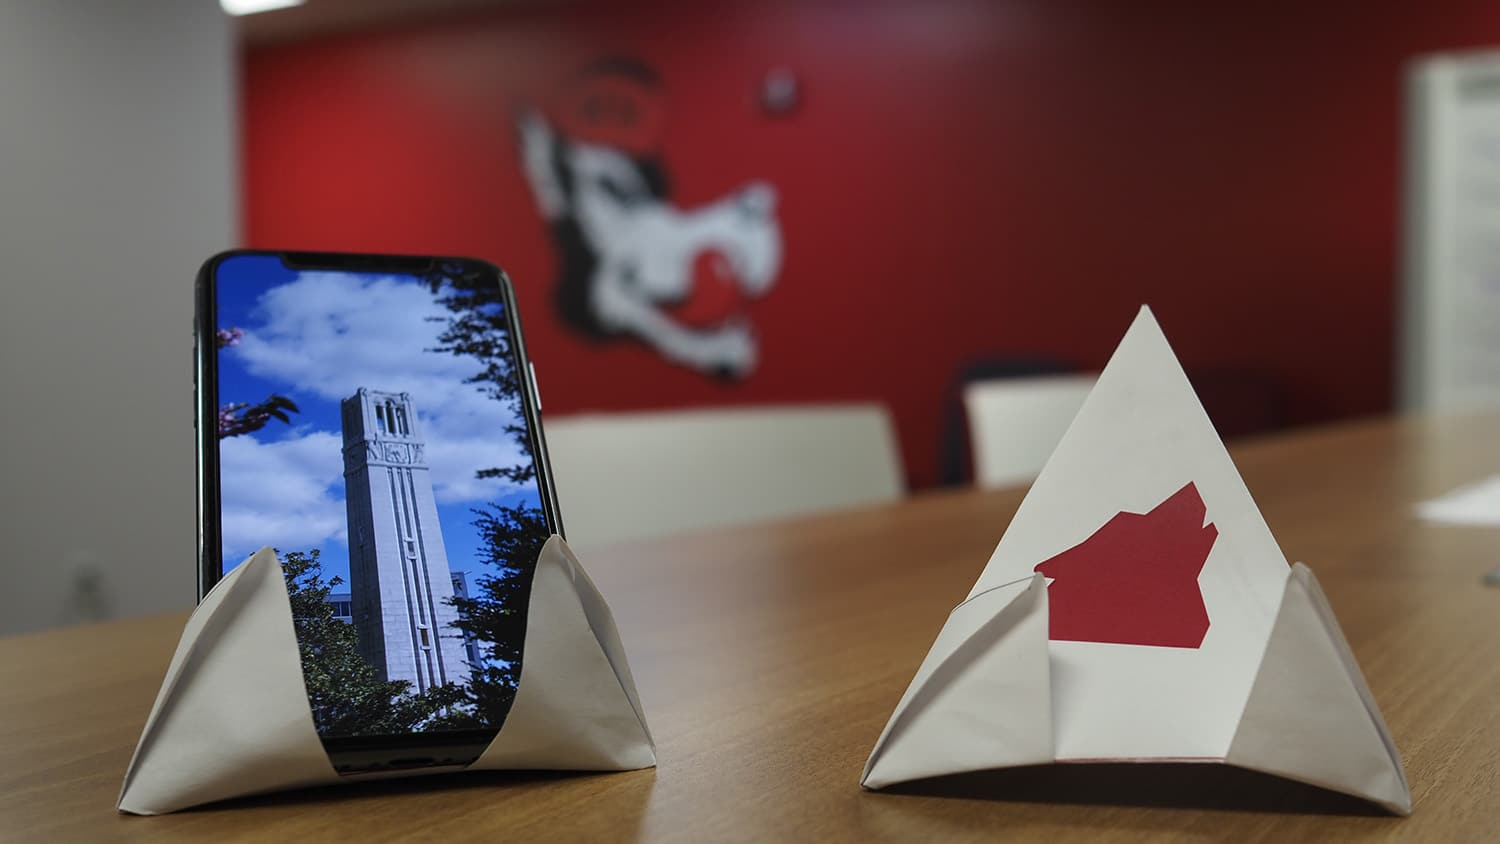 Two origami phone stands on a table, one holding a phone vertically and the other without a phone